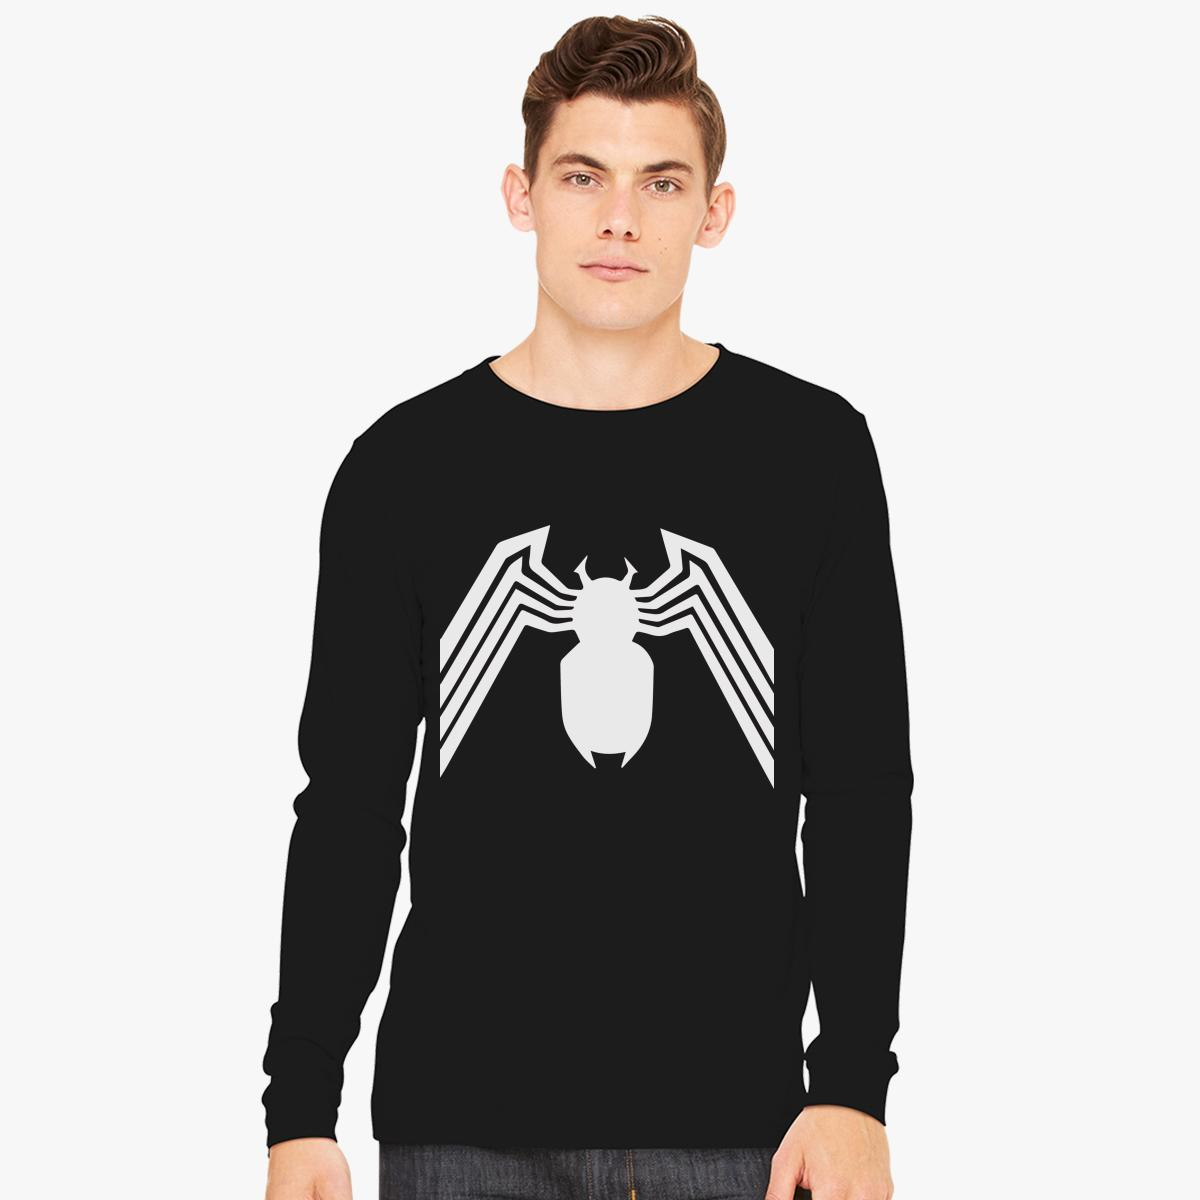 Venom Spider-Man Long Sleeve T-shirt